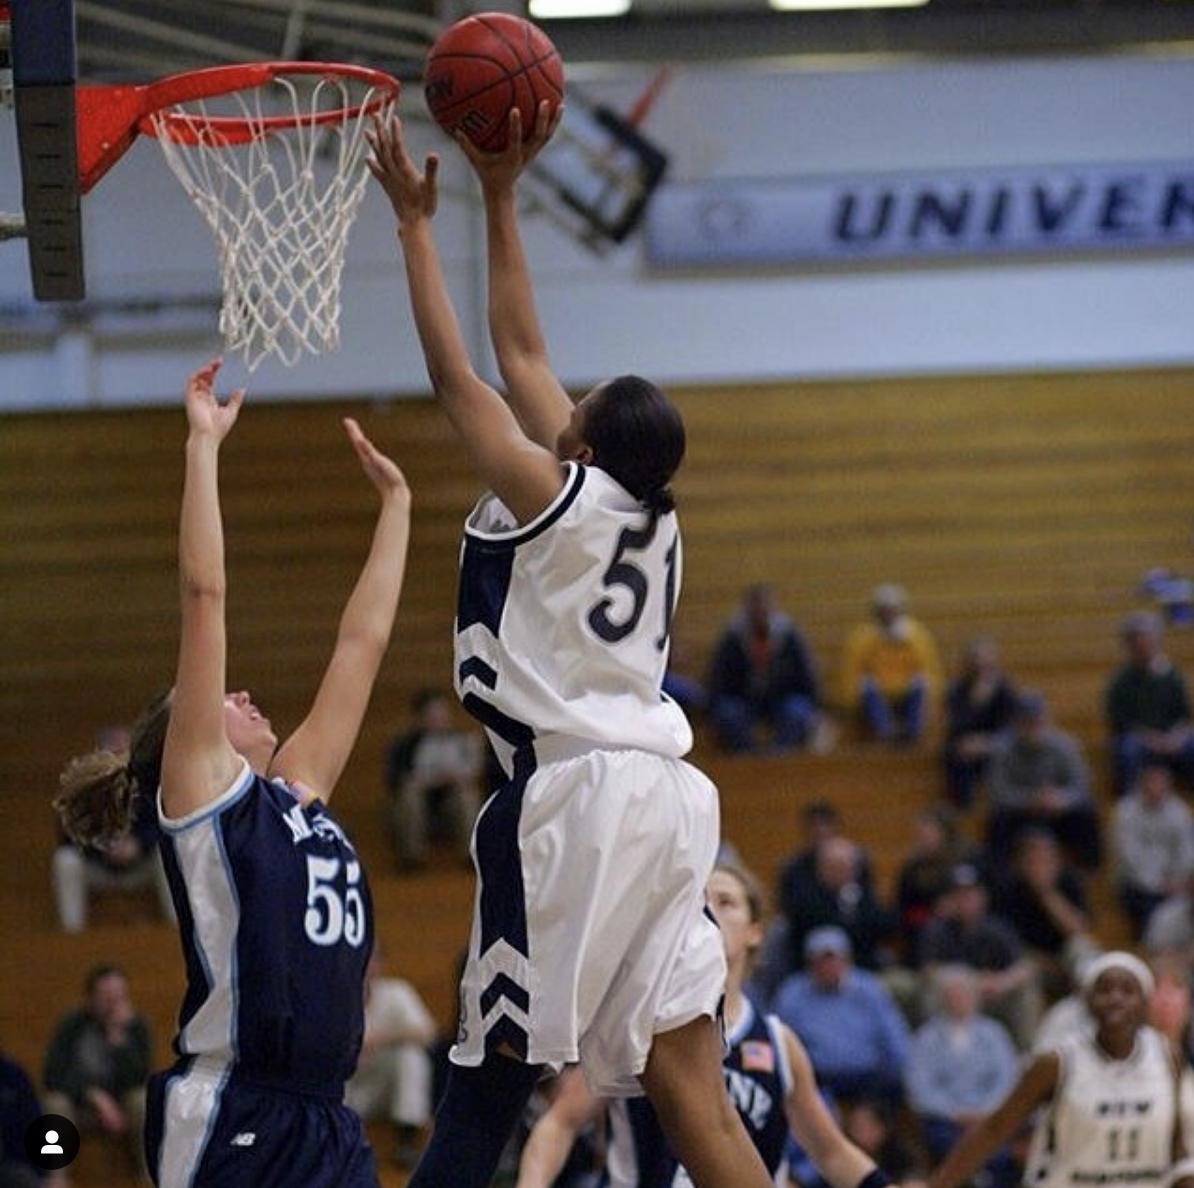 (Player 51) 2007 against Maine